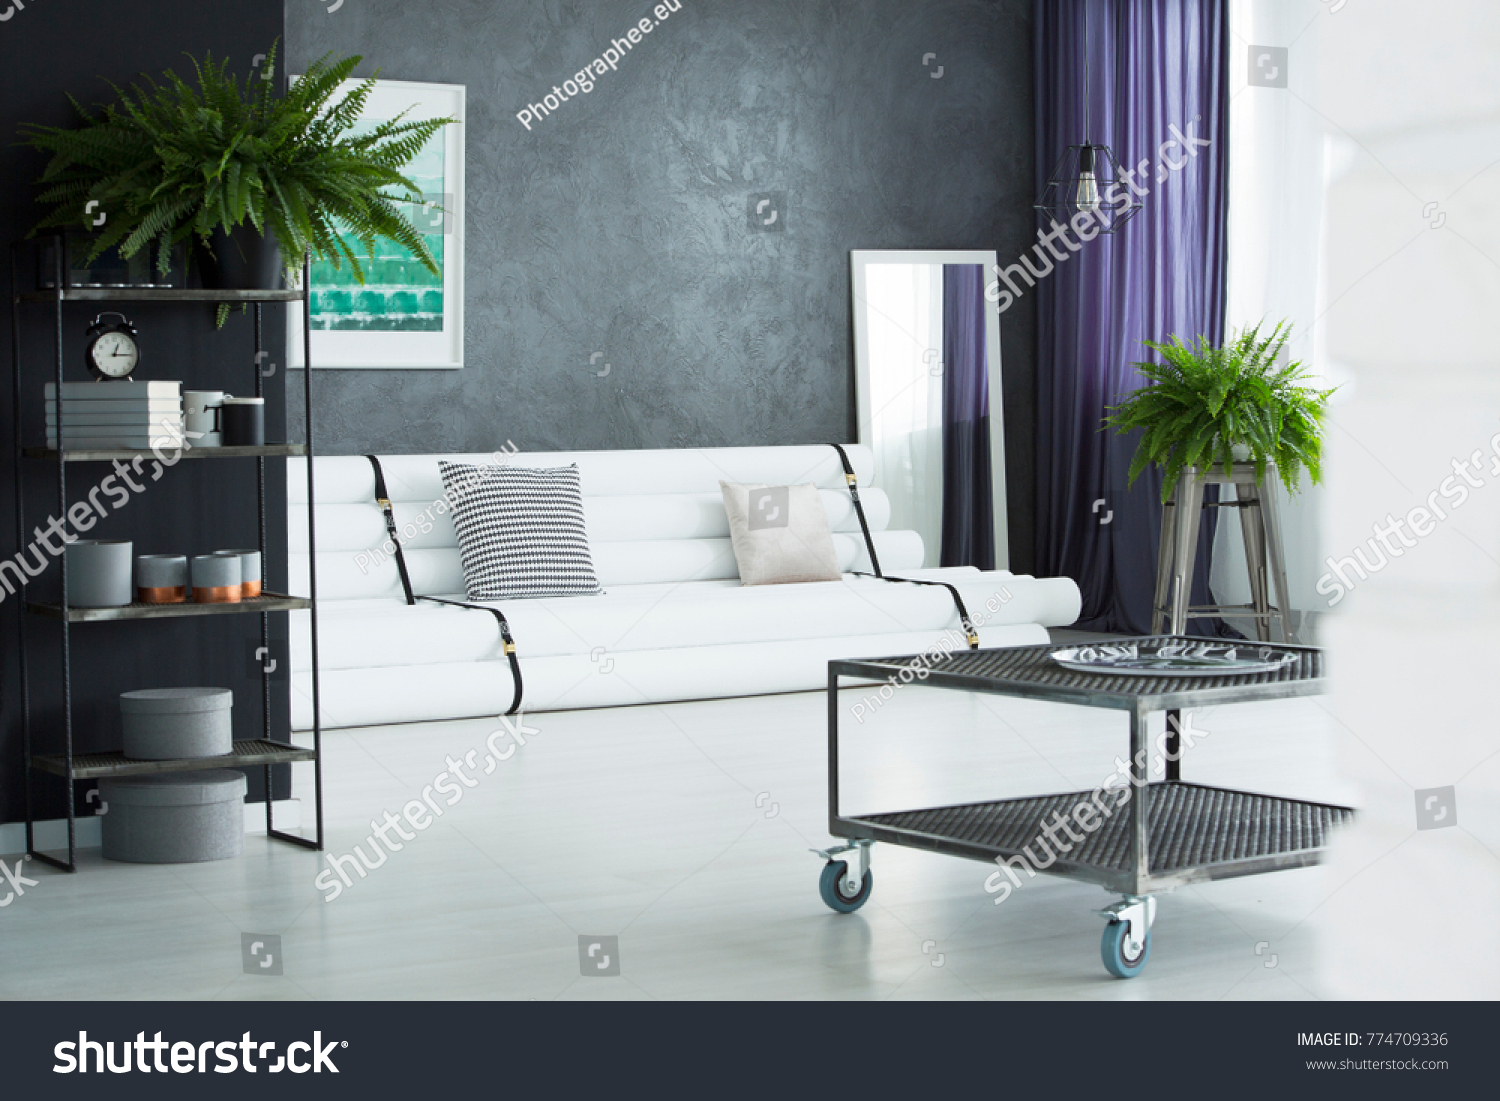 Industrial Table Designer Living Room Plants Stock Photo (Royalty ...